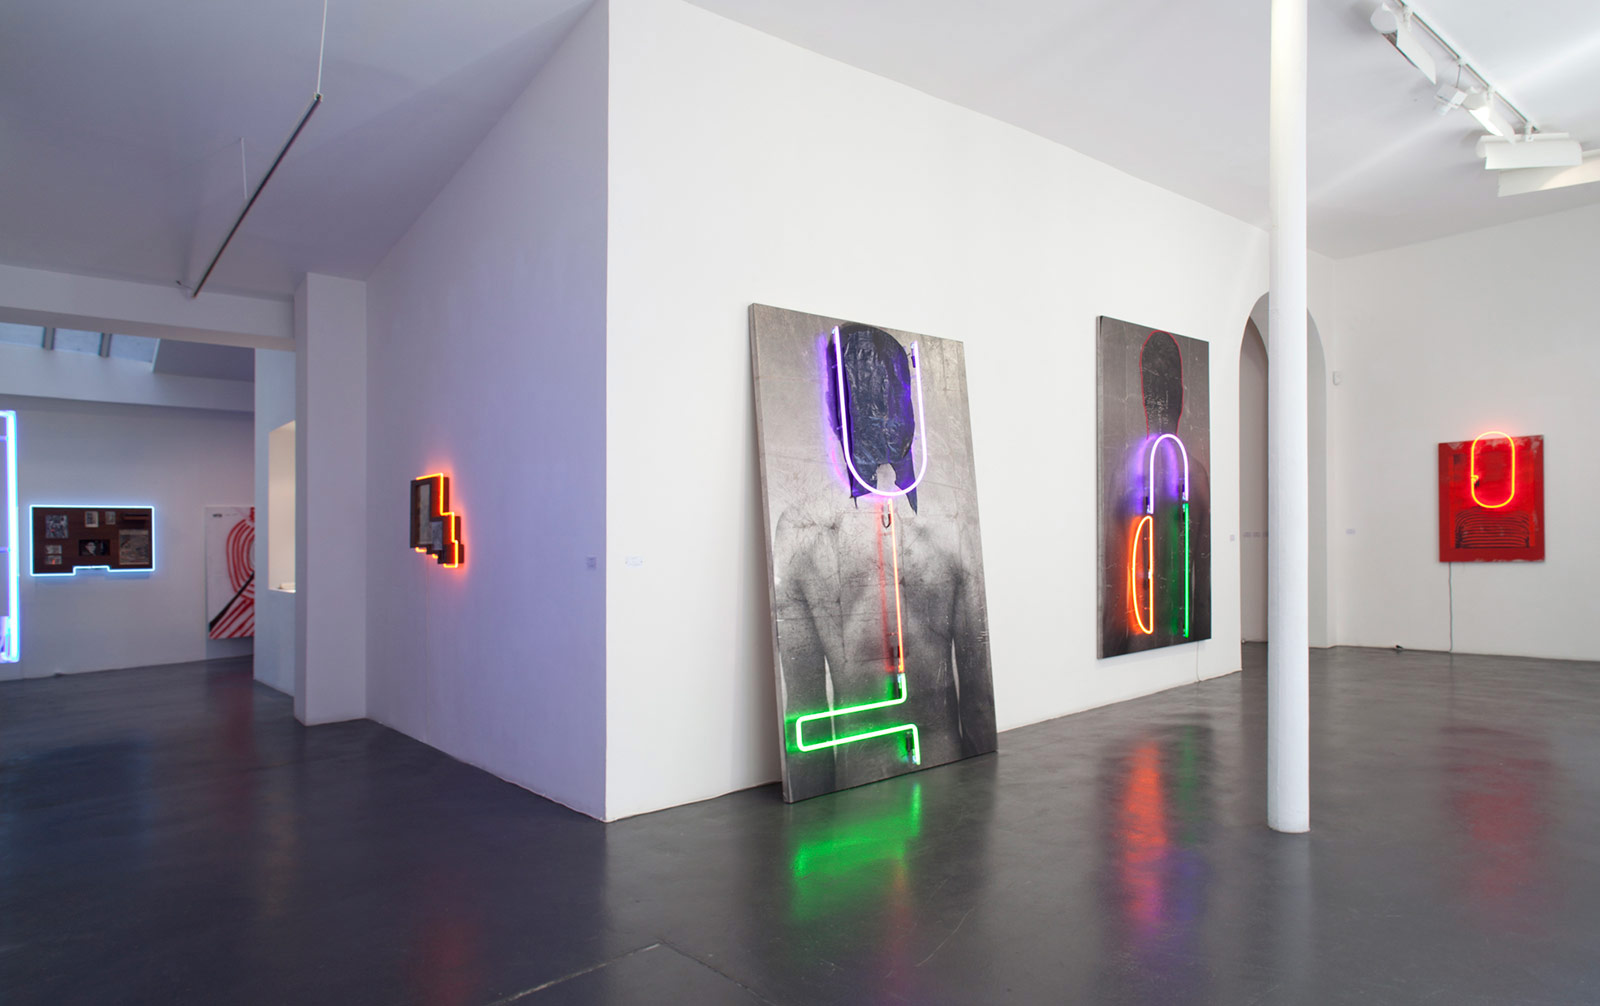 13 brook andrew 2016 the forest installation view